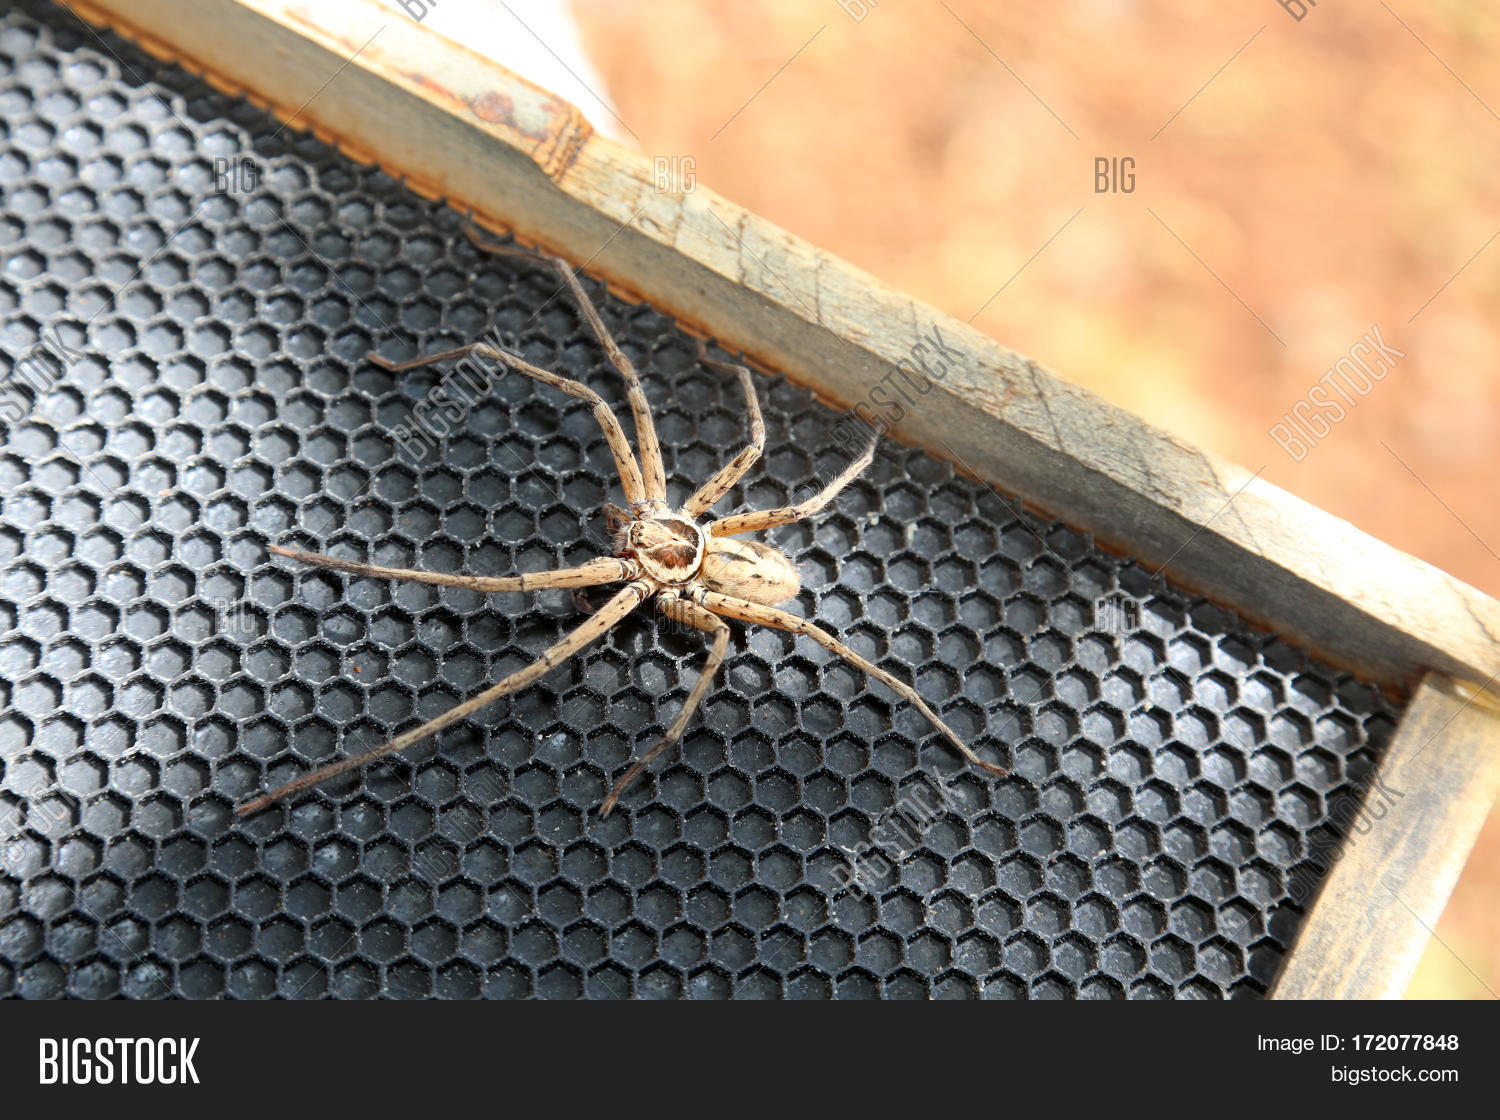 Cane Spider Image Photo Free Trial Bigstock